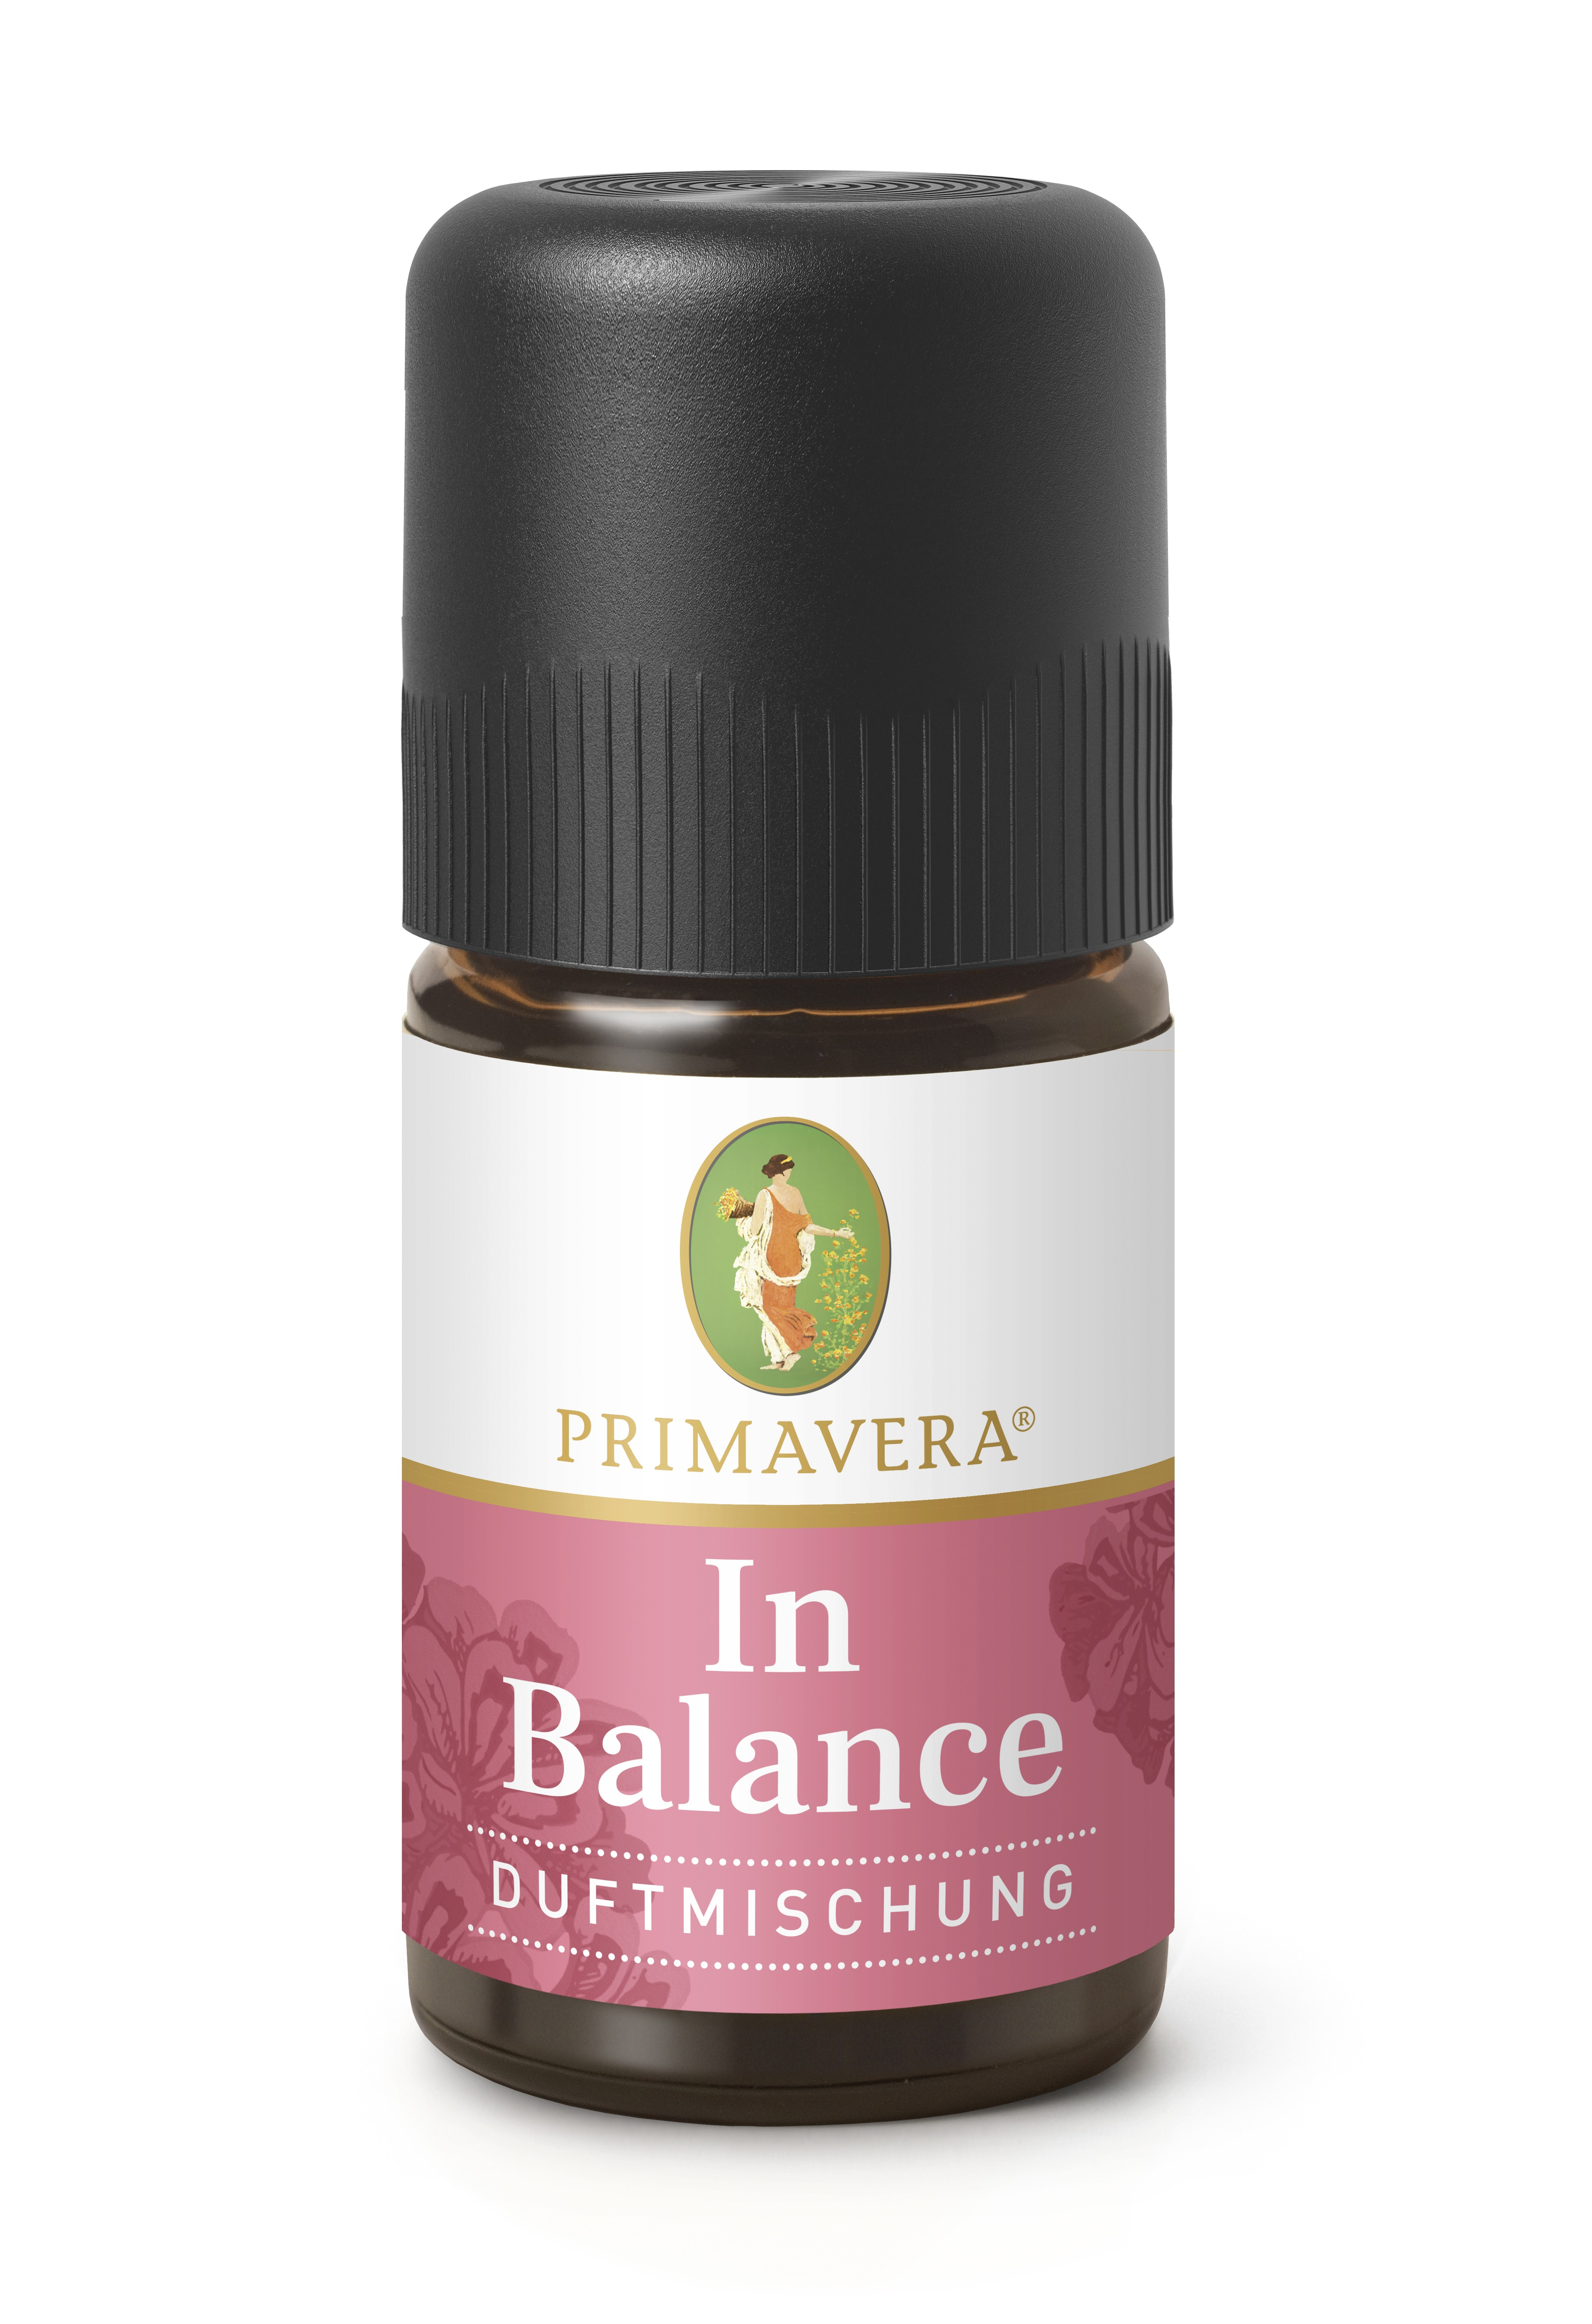 In Balance Duftmischung 5 ml